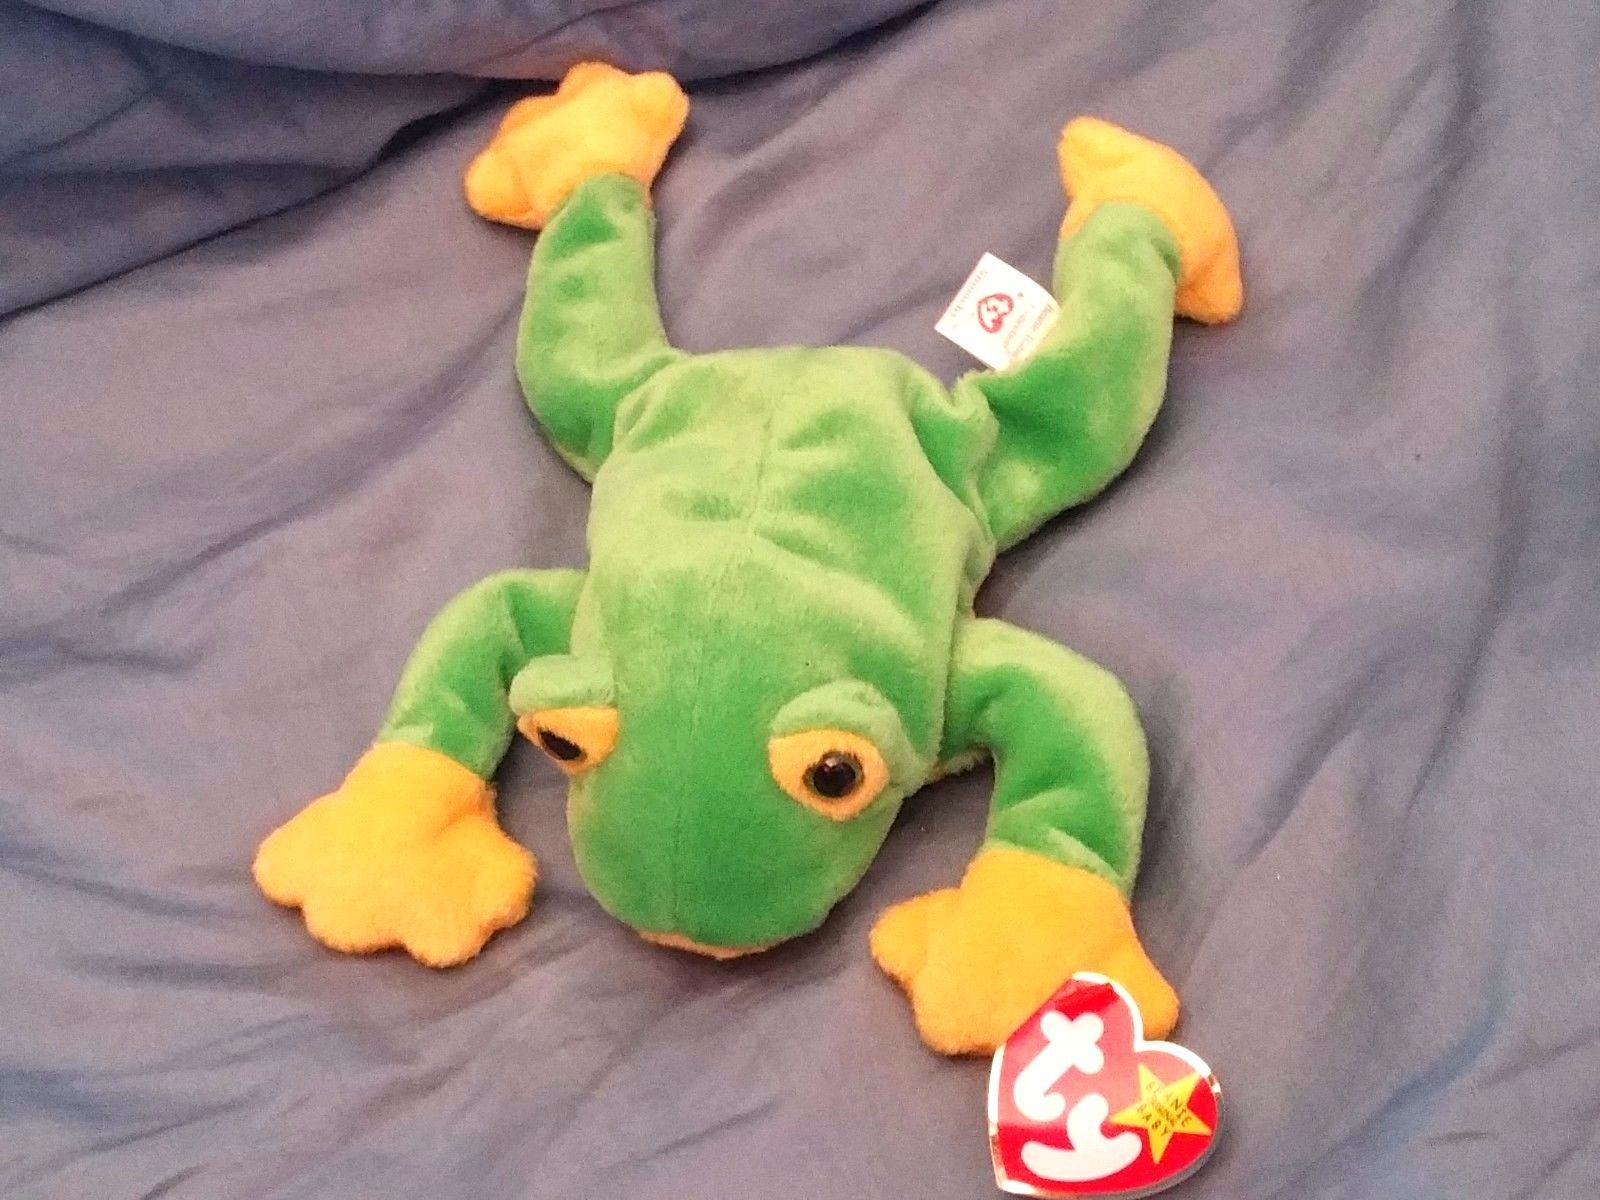 RETRO ORIGINAL TY BEANIE BABY PLUSH SMUCHEY FROG COLLECTIBLE NICE For Sale  - Item  1619540 e8dce3d8148